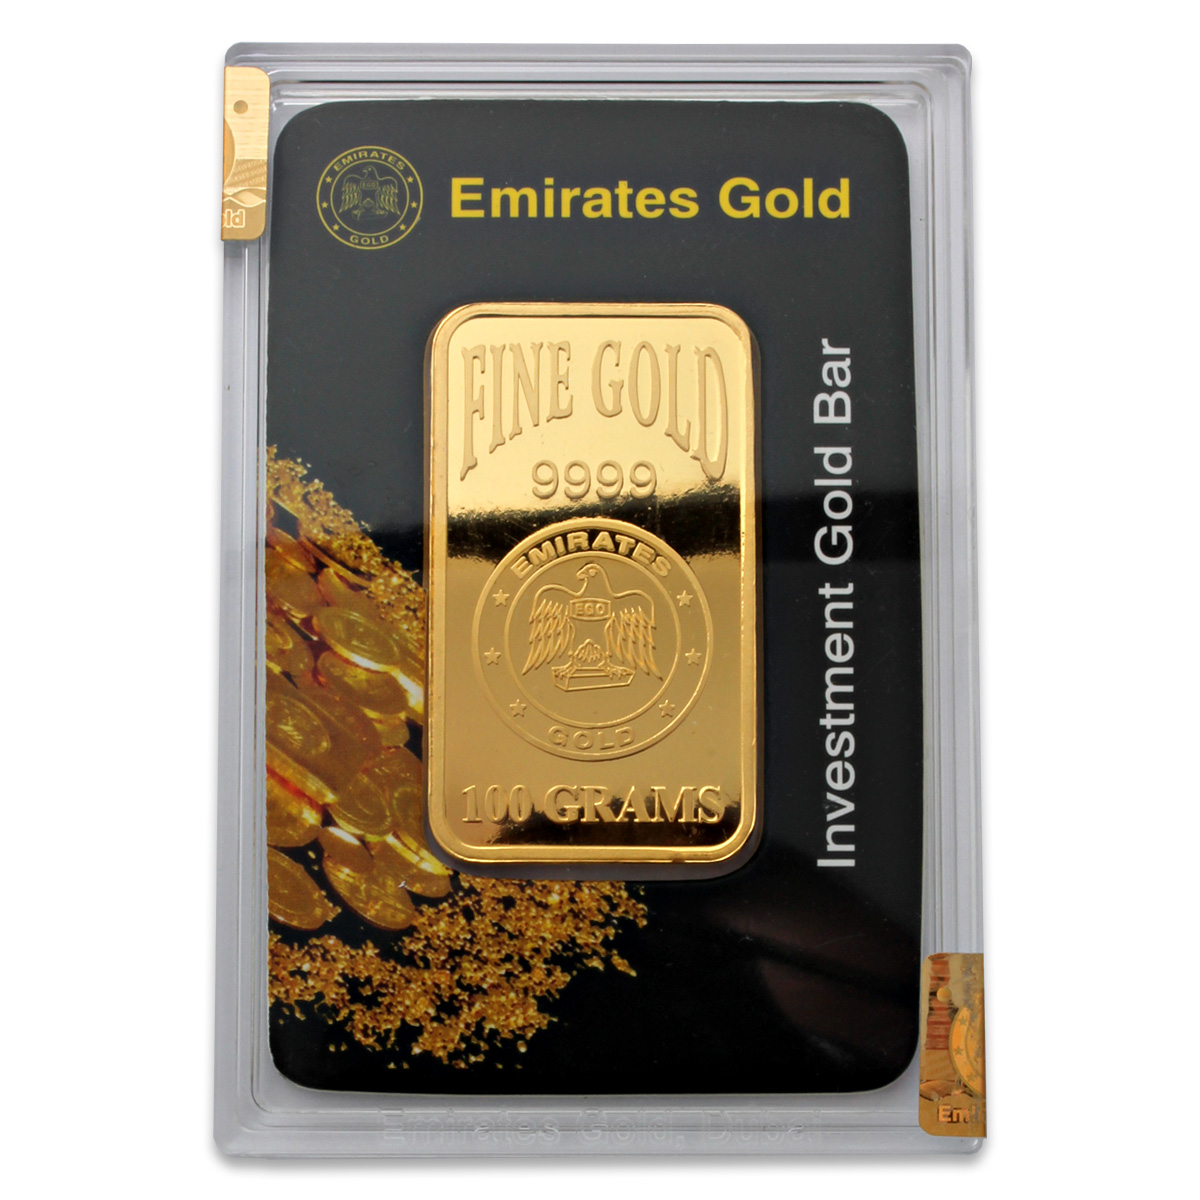 100g Gold Bar - Emirates Gold Boxed Certified